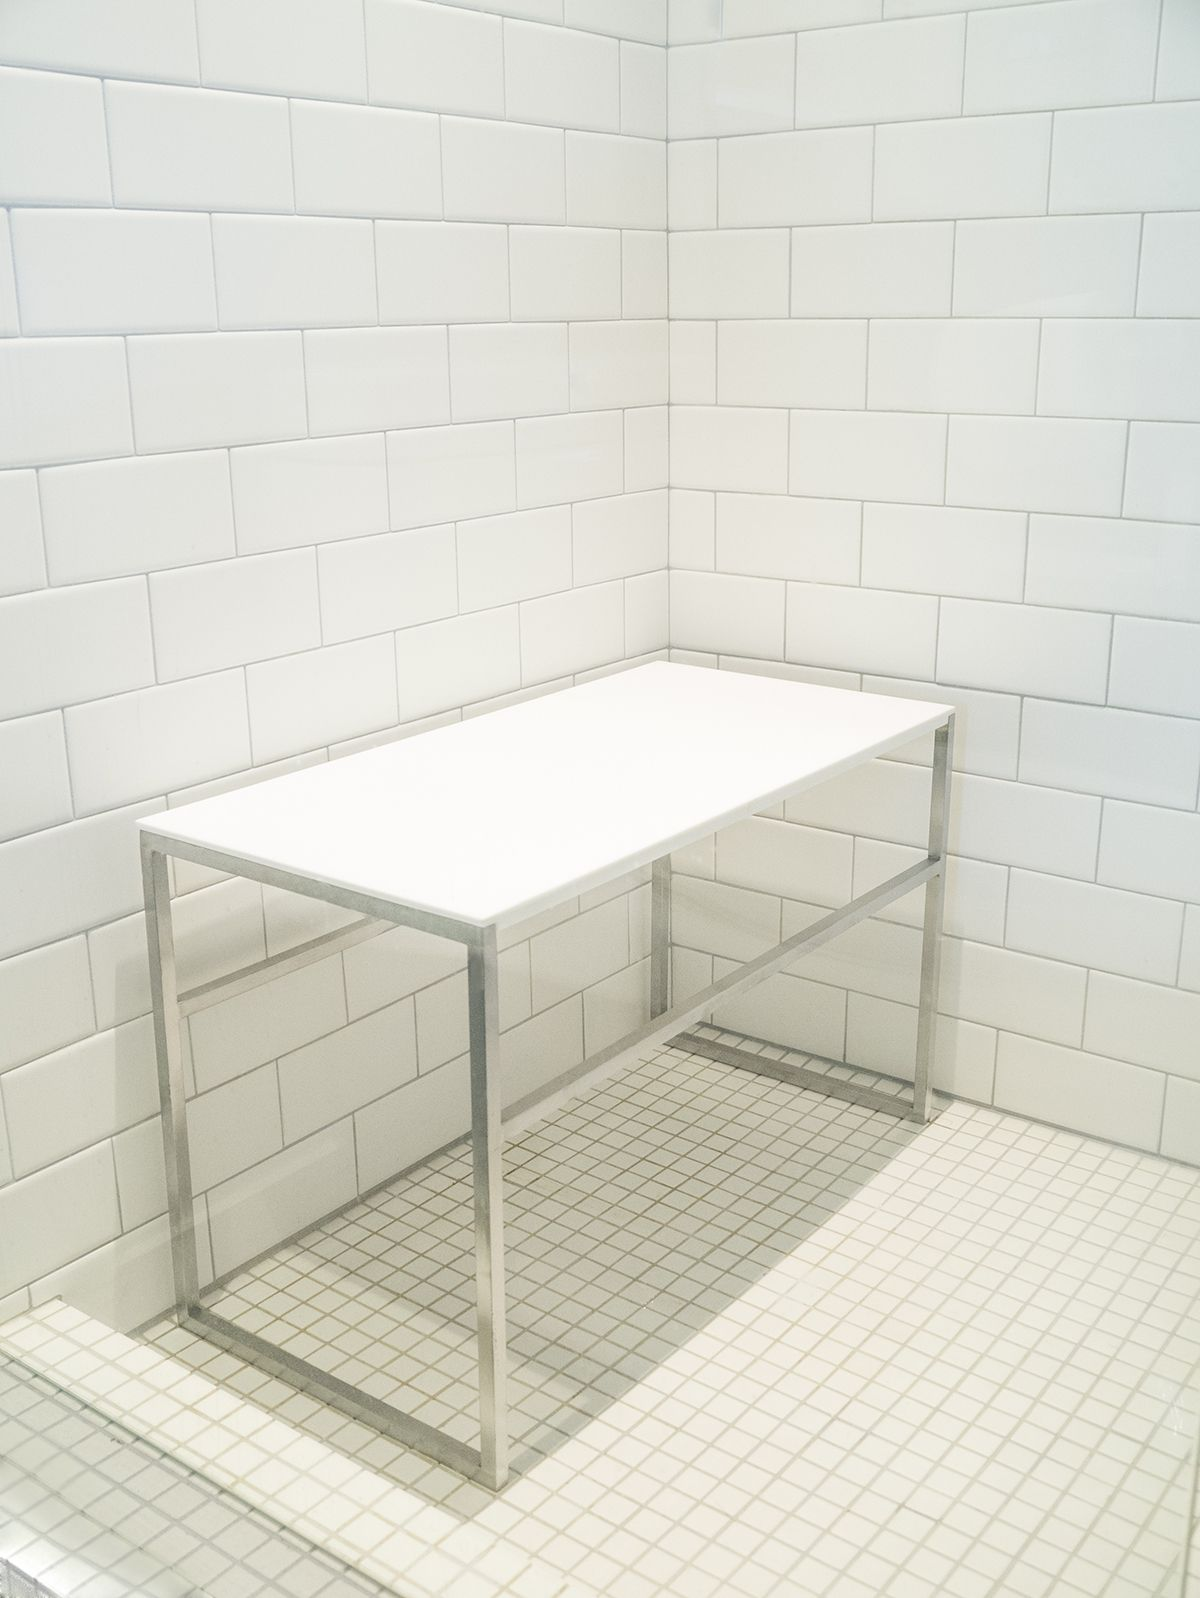 Stainless steel and solid surface shower bench | shower stalls ...